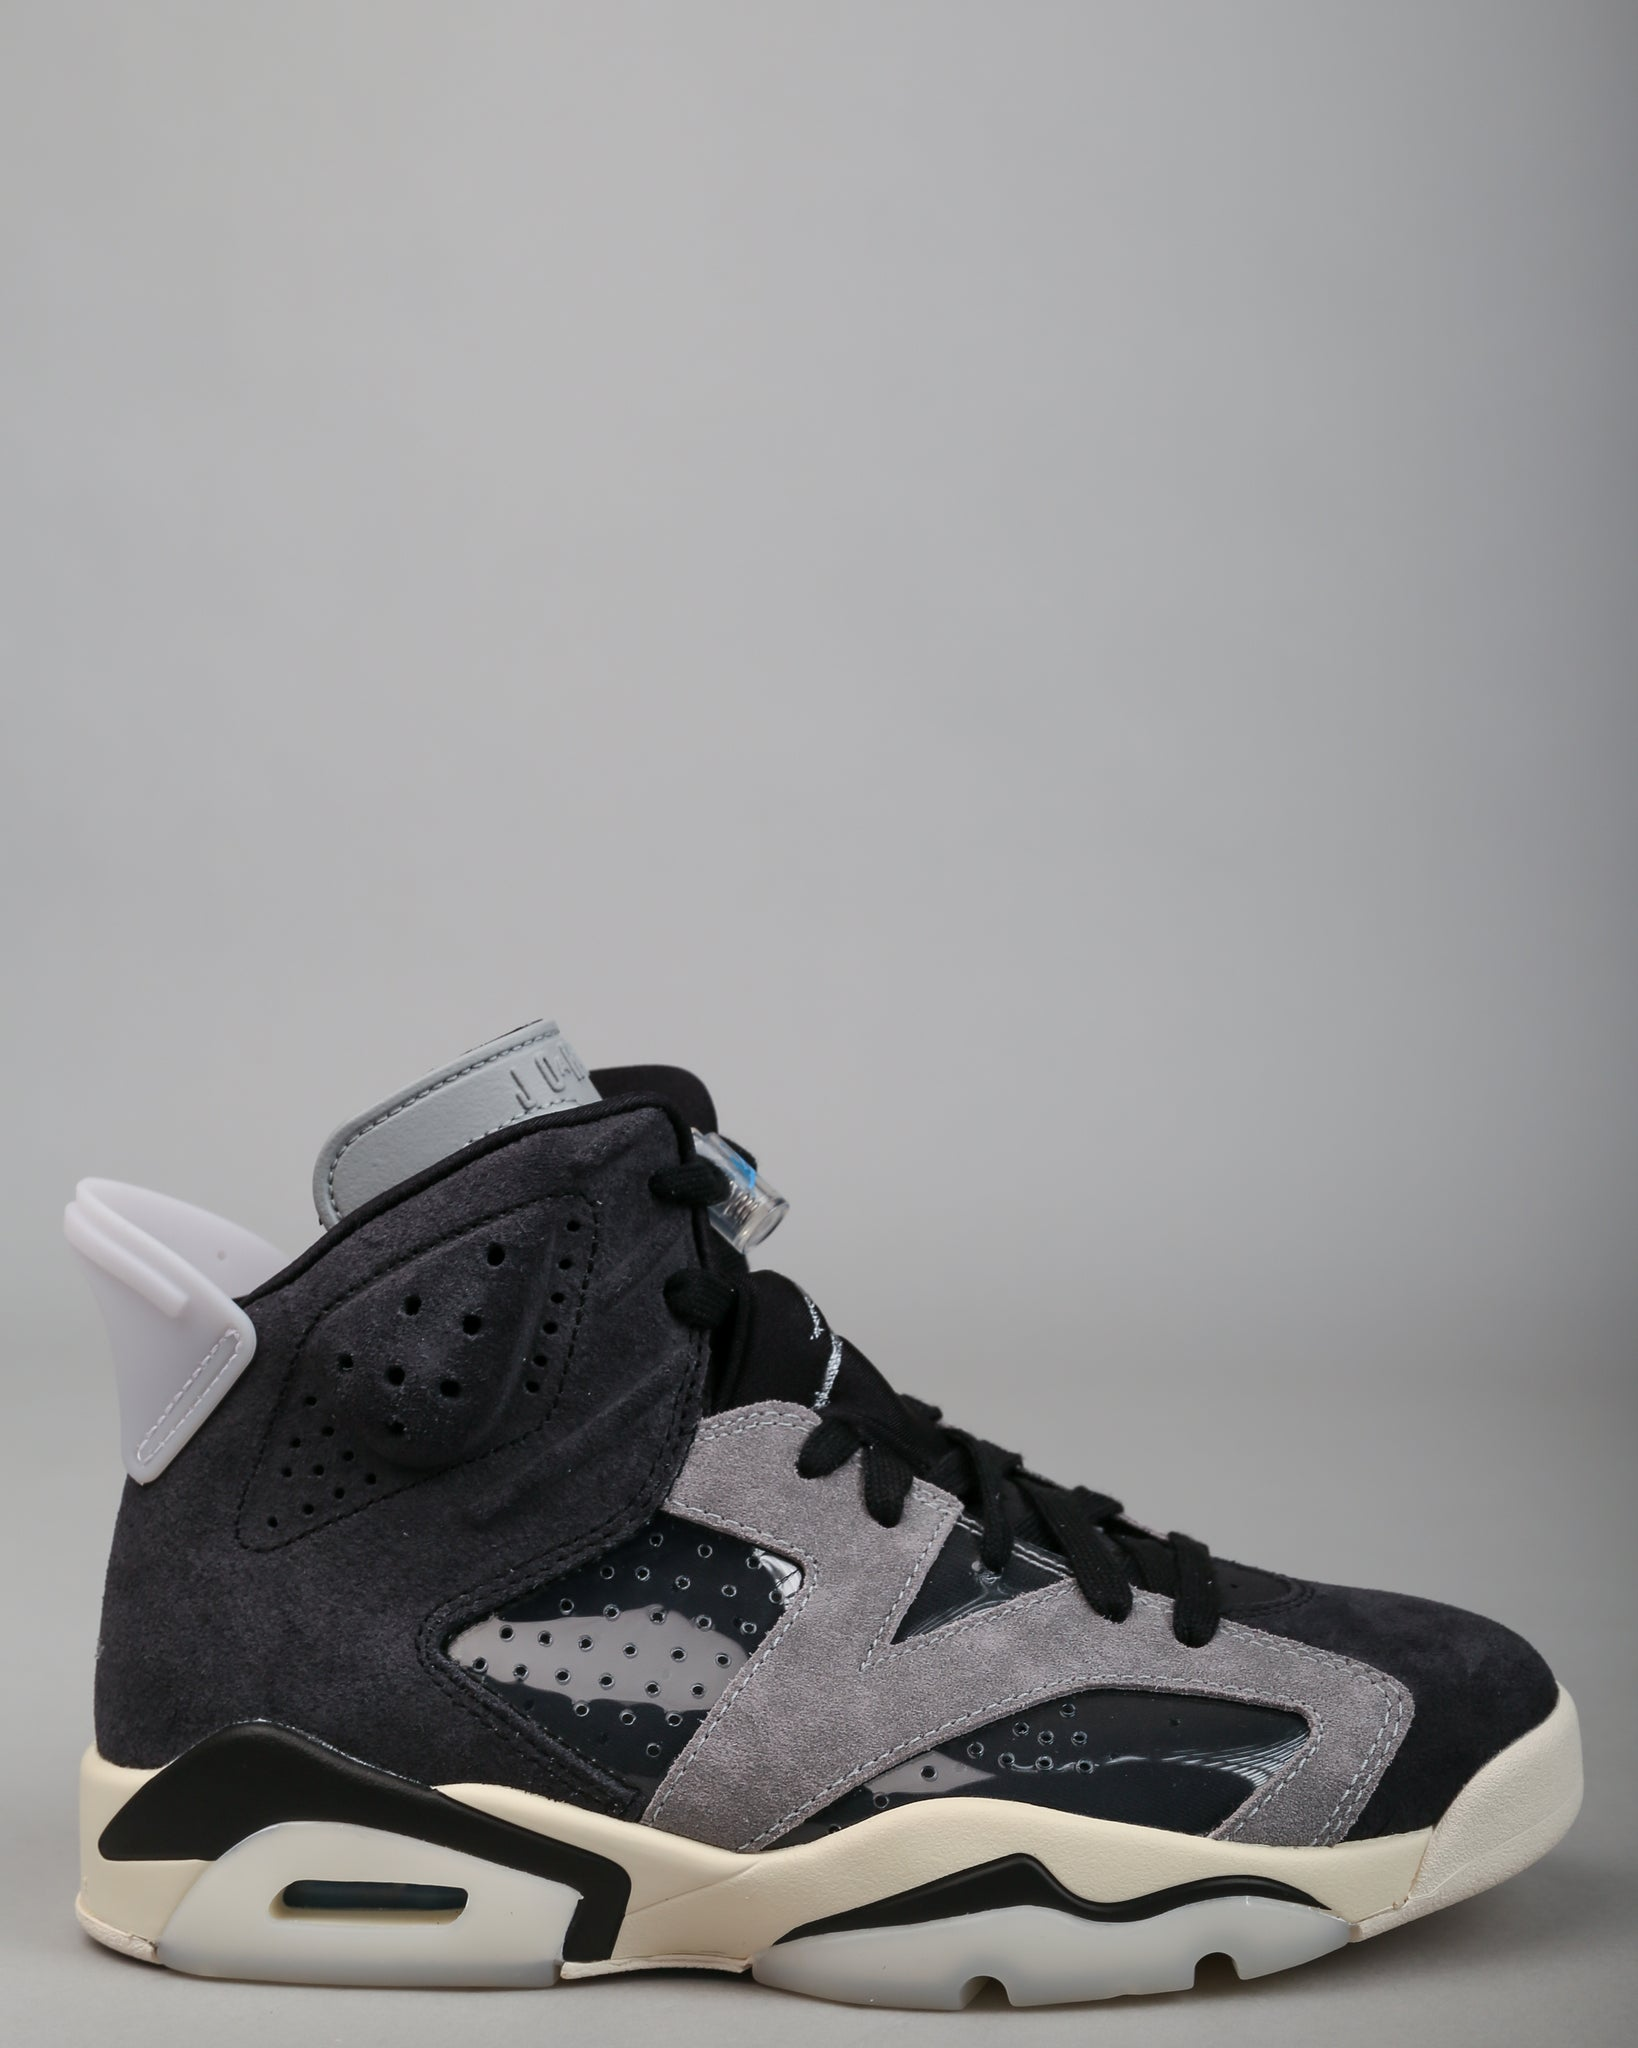 WMNS Air Jordan 6 Retro Black/Chrome/Light Smoke